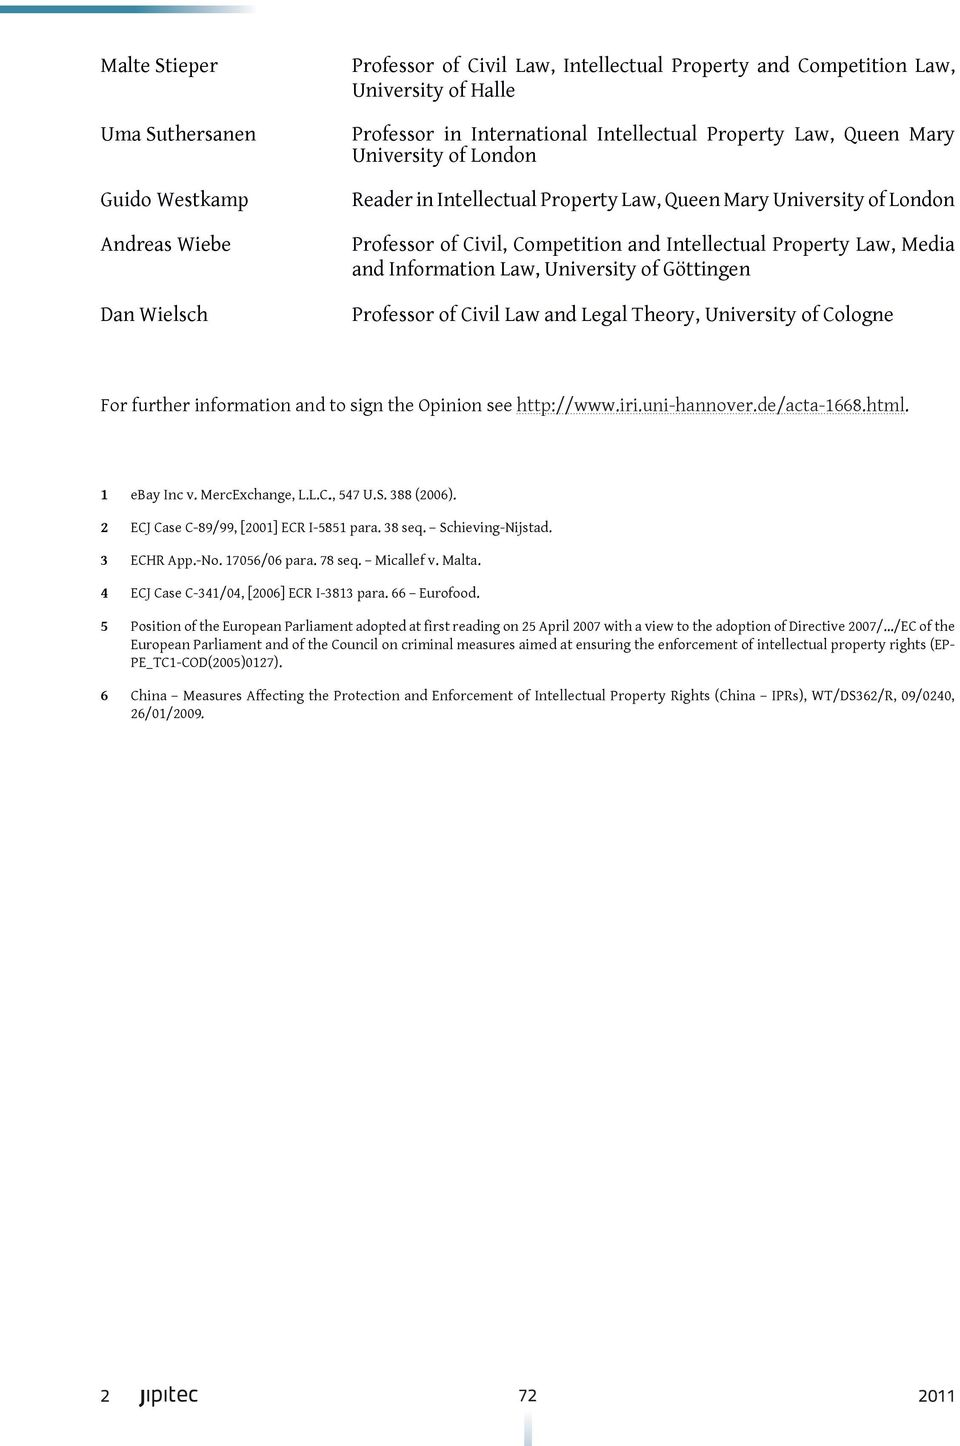 Law, University of Göttingen Professor of Civil Law and Legal Theory, University of Cologne For further information and to sign the Opinion see http://www.iri.uni-hannover.de/acta-1668.html.